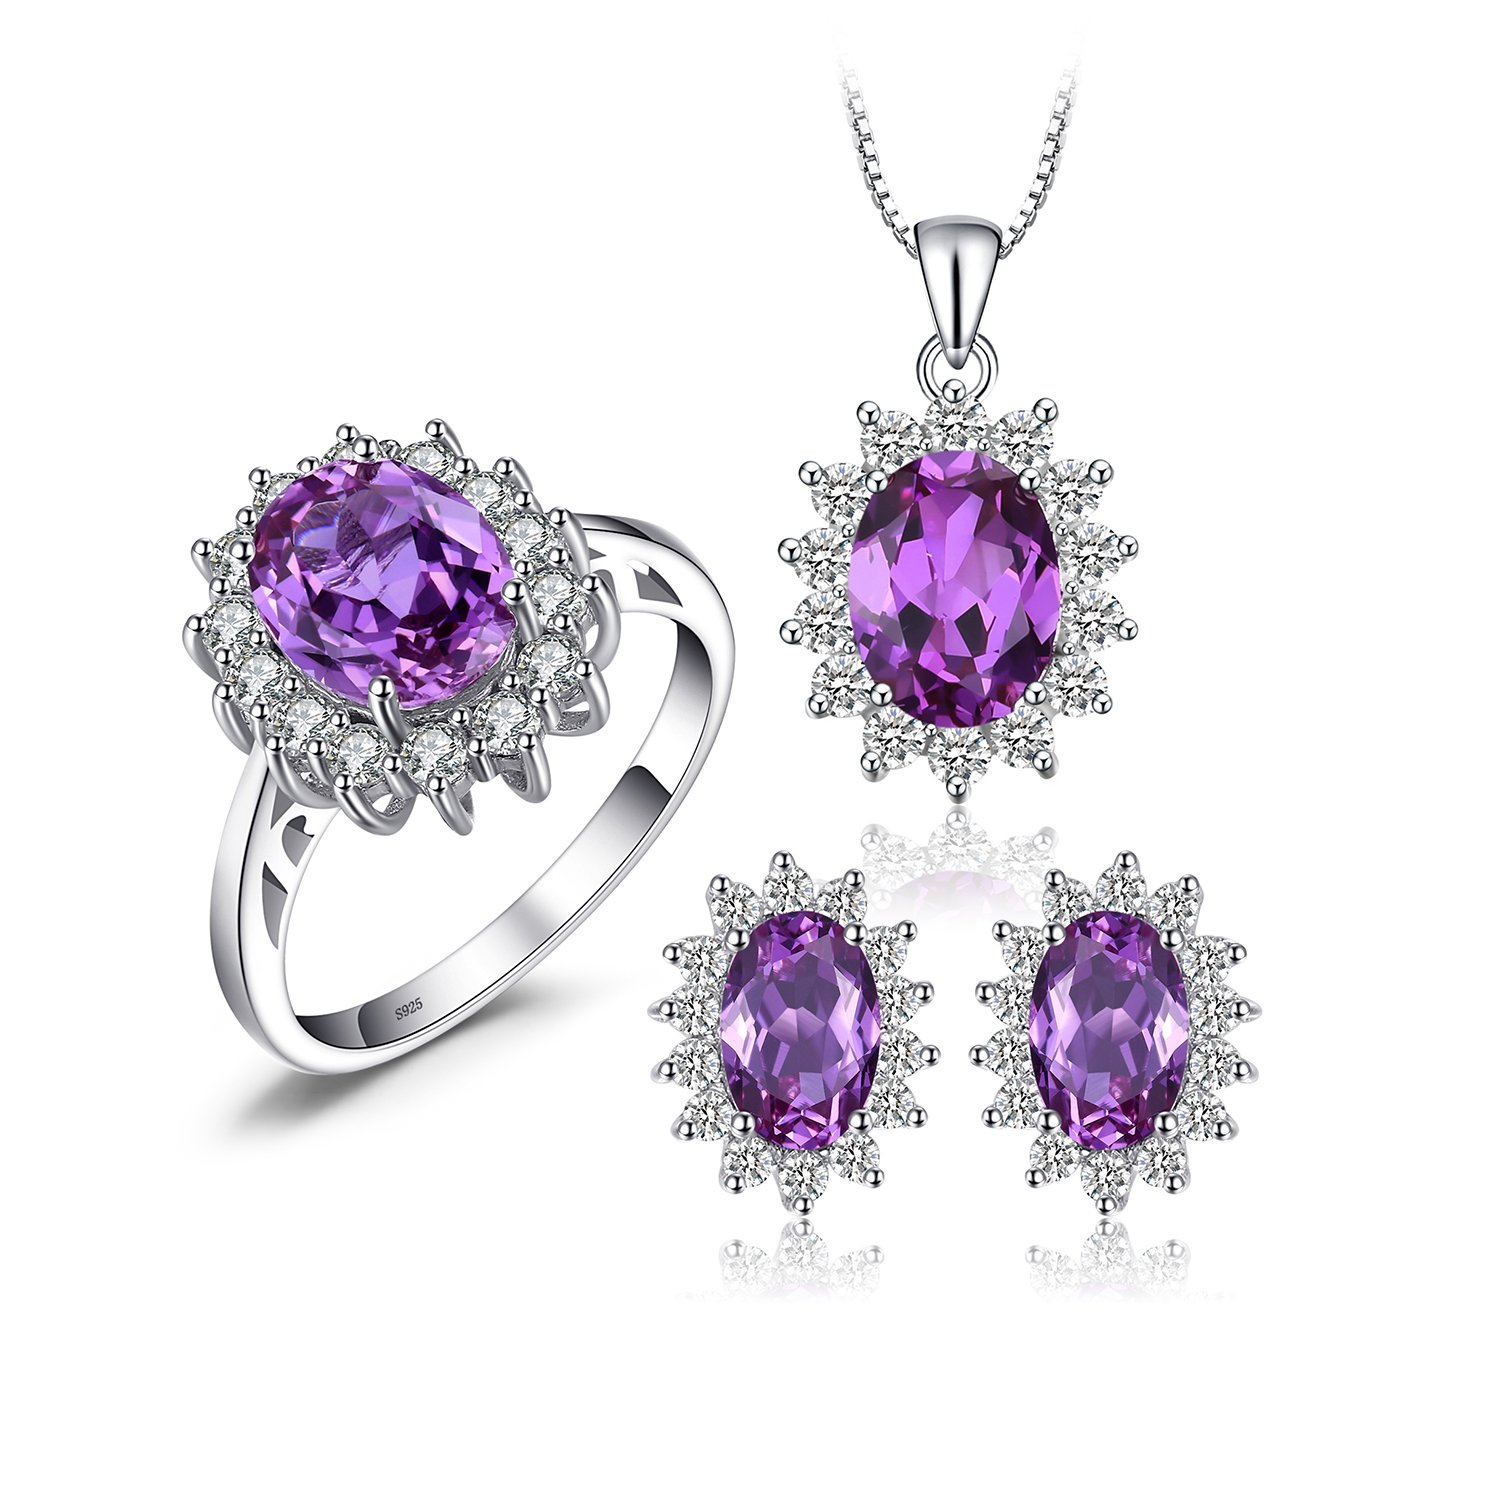 JewelryPalace Women's Princess Diana William Kate Middleton's 7.9ct Created Alexandrite Sapphire Jewelry Sets Ring Pendant Necklace Stud Earrings 925 Sterling Silver Size 9